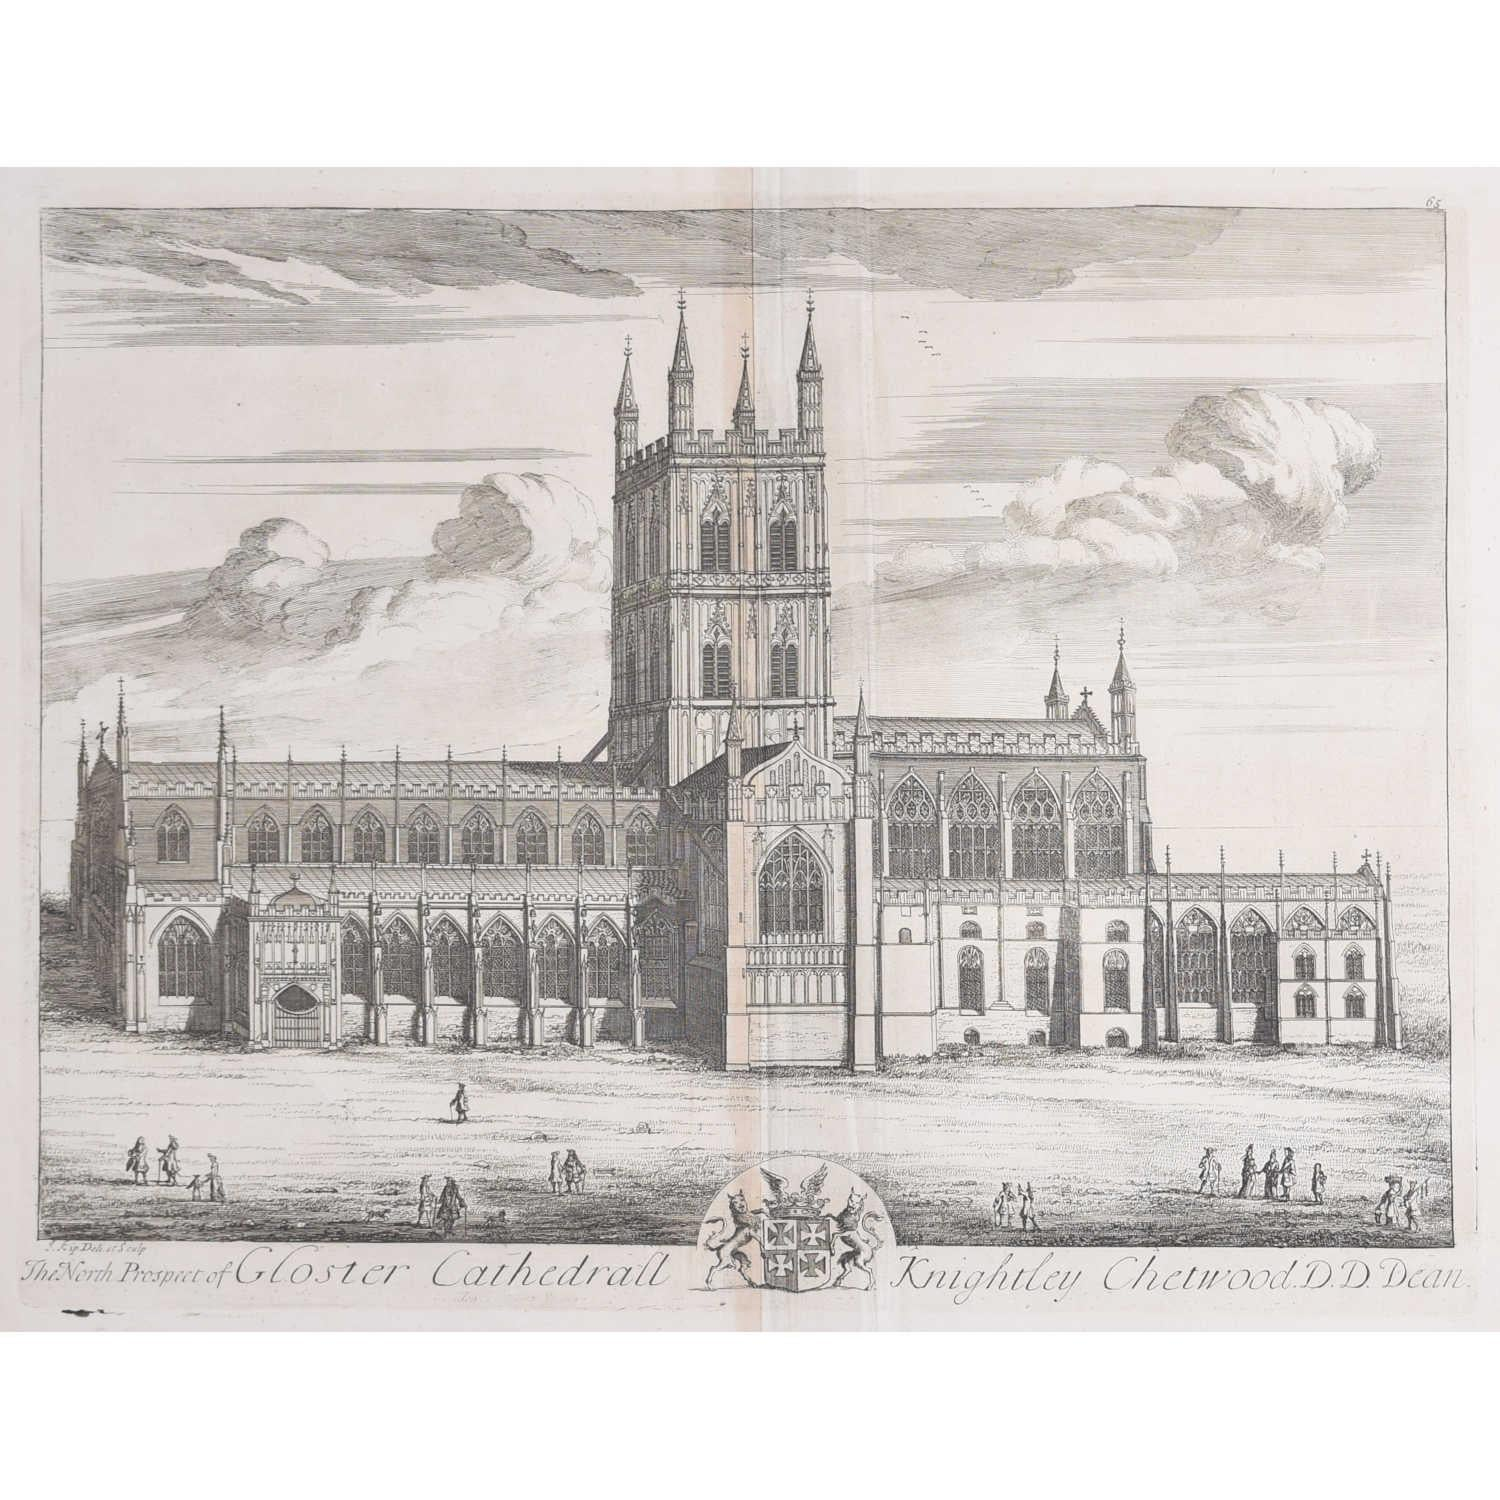 Johannes Kip, The North Prospect of Gloster Cathedral (c.1716) Copper Engraving